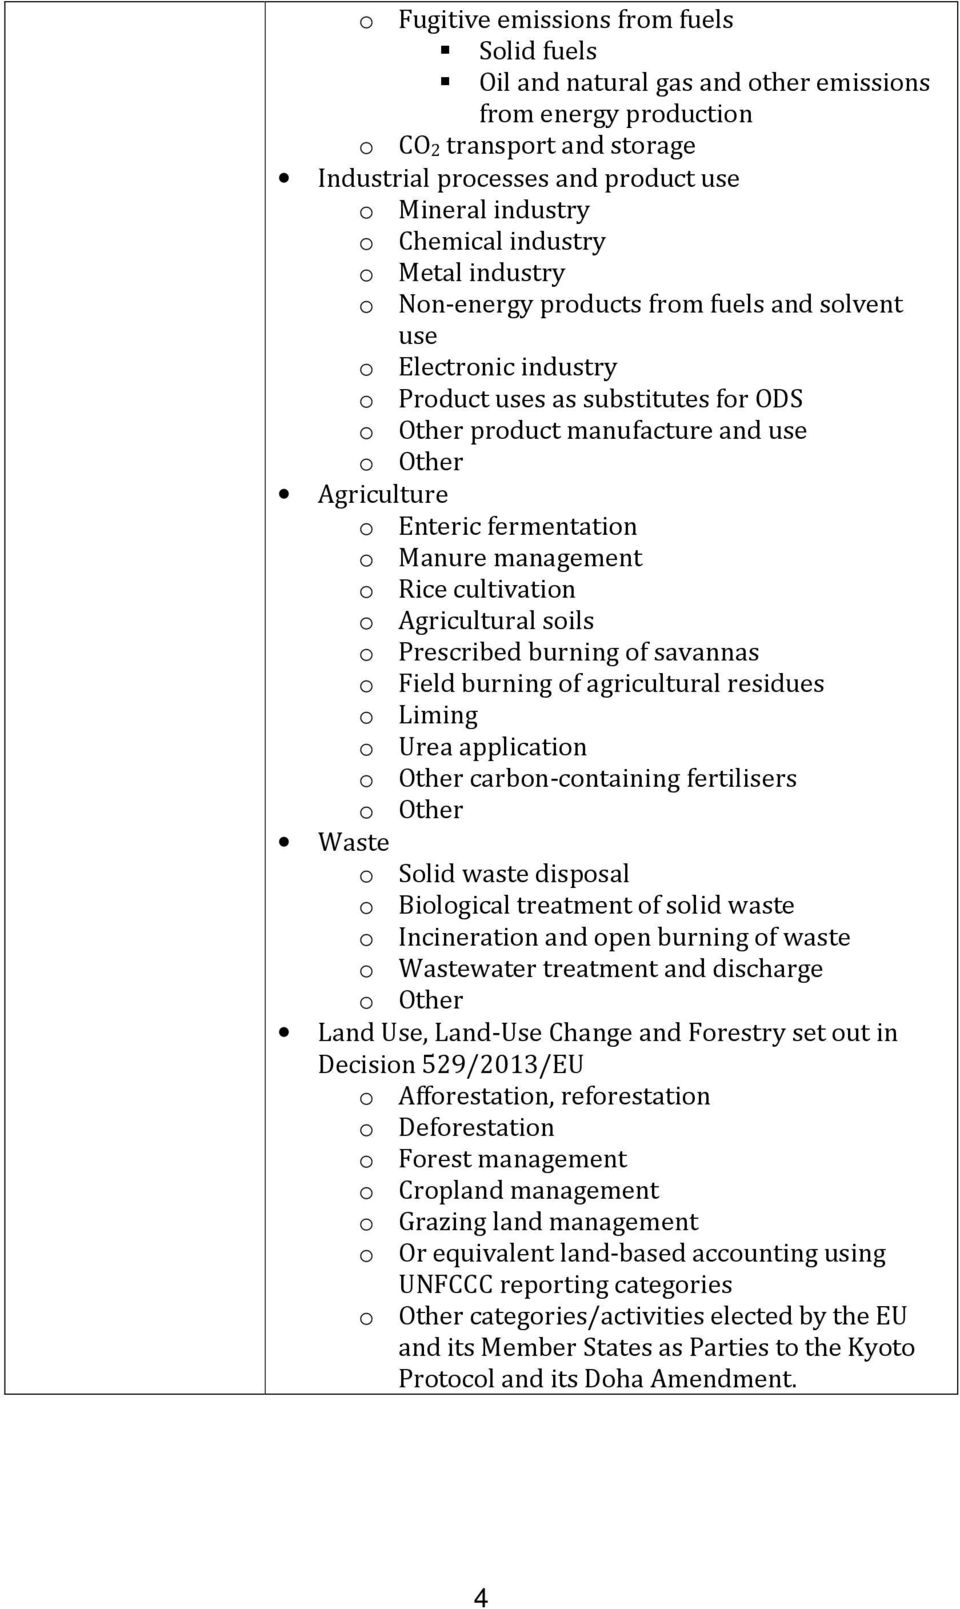 fermentation o Manure management o Rice cultivation o Agricultural soils o Prescribed burning of savannas o Field burning of agricultural residues o Liming o Urea application carbon-containing